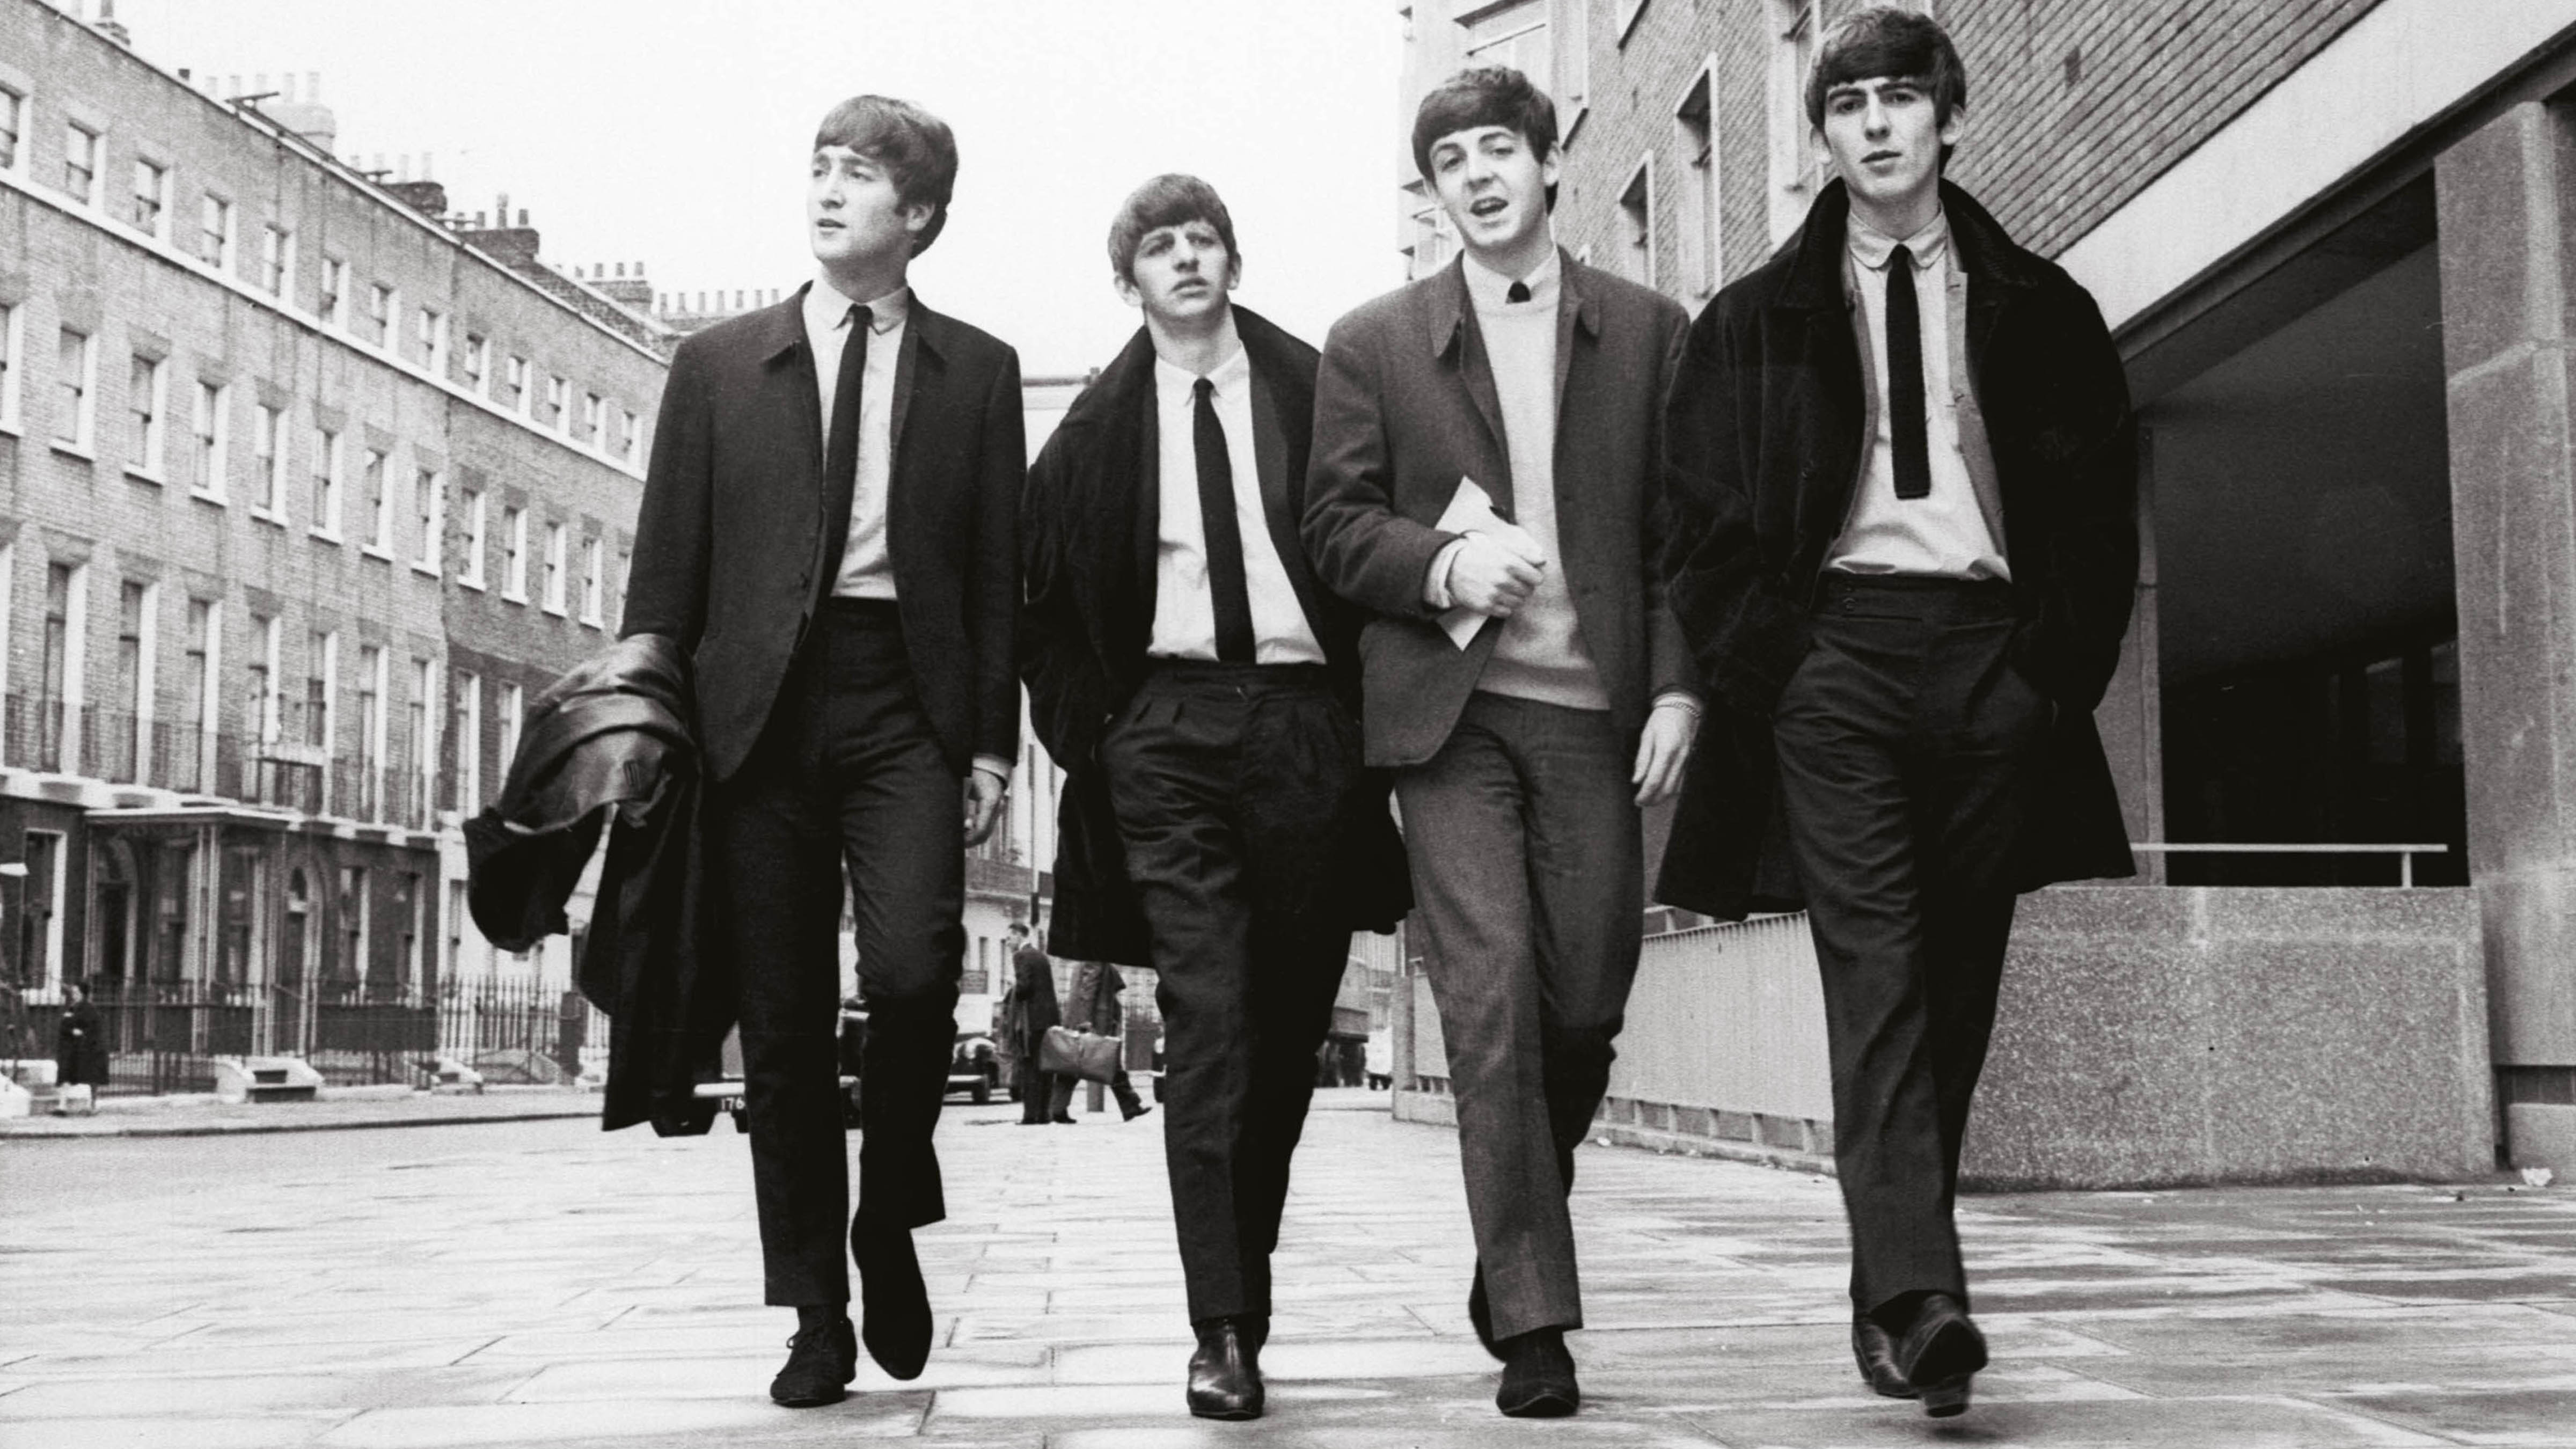 The Beatles beat Adele to the title of Britains favourite